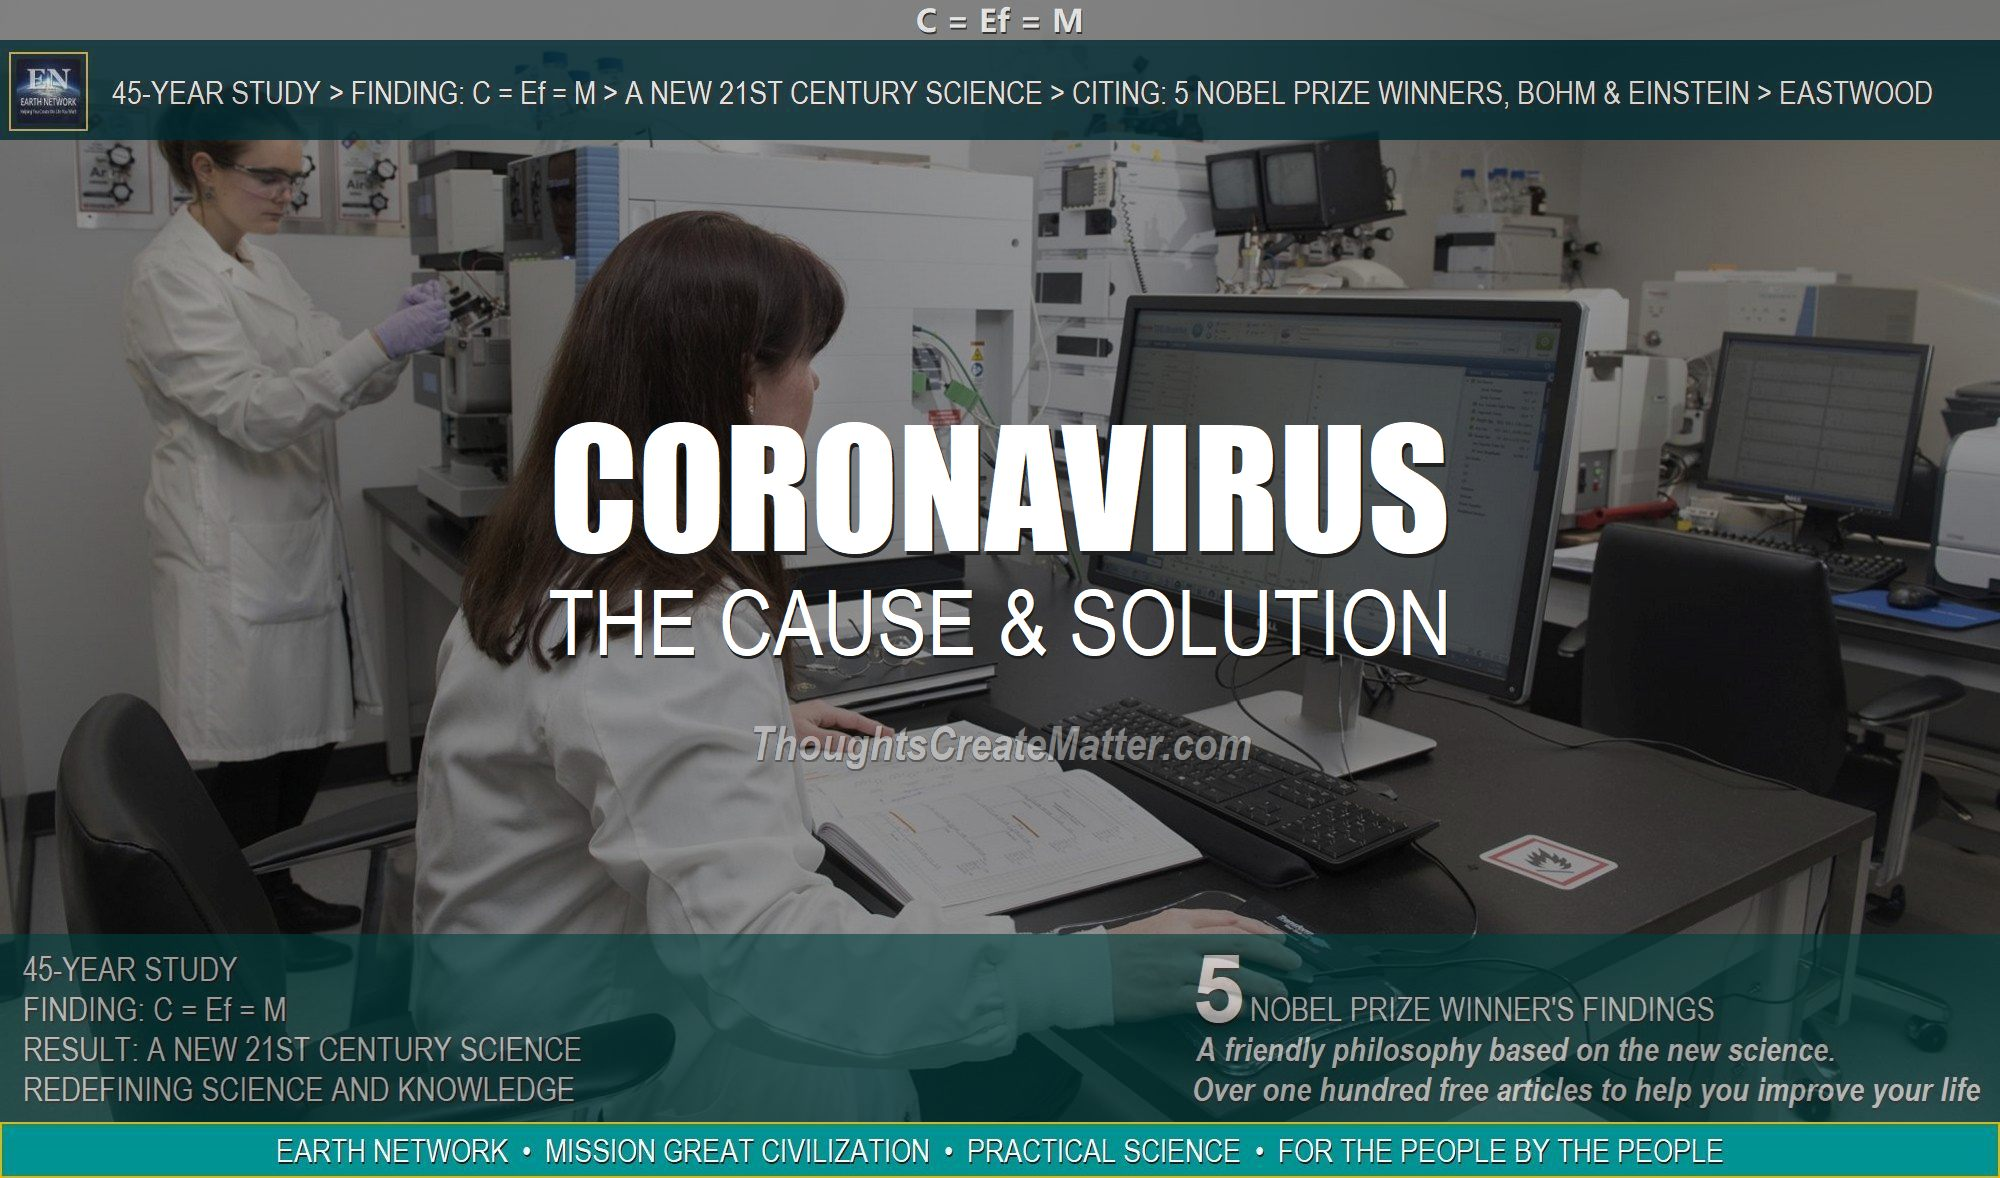 Woman searching for cure is in wrong paradigm. We have the coronavirus solution and cure.